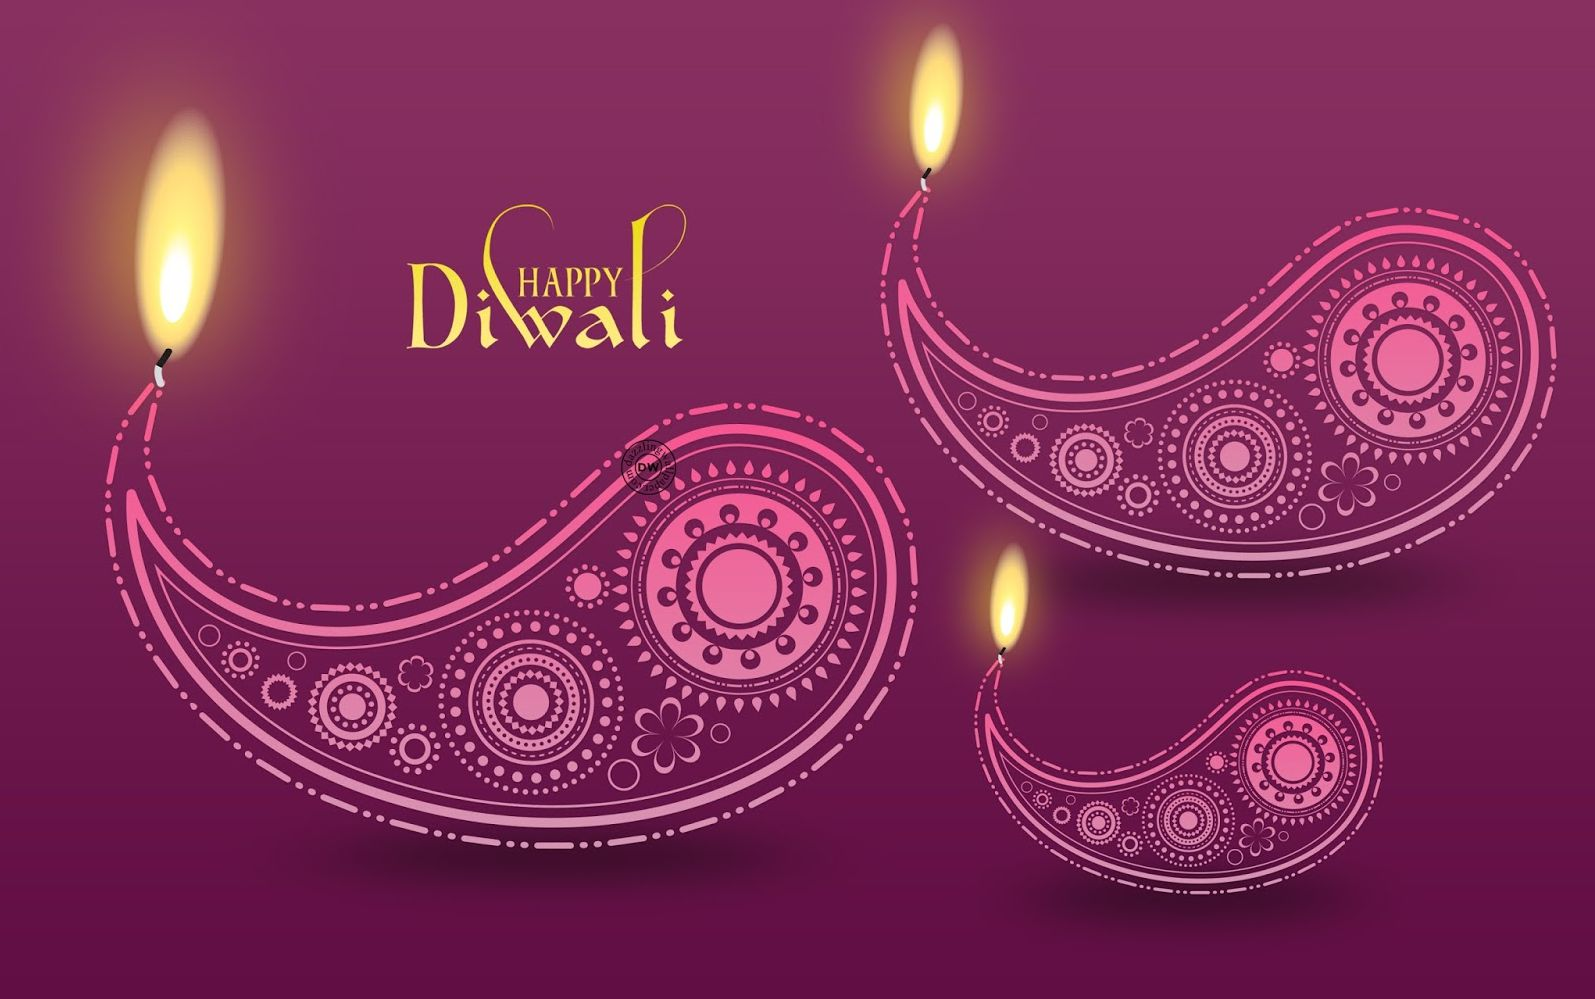 Happy Diwali Images Wallpapers with Pictures